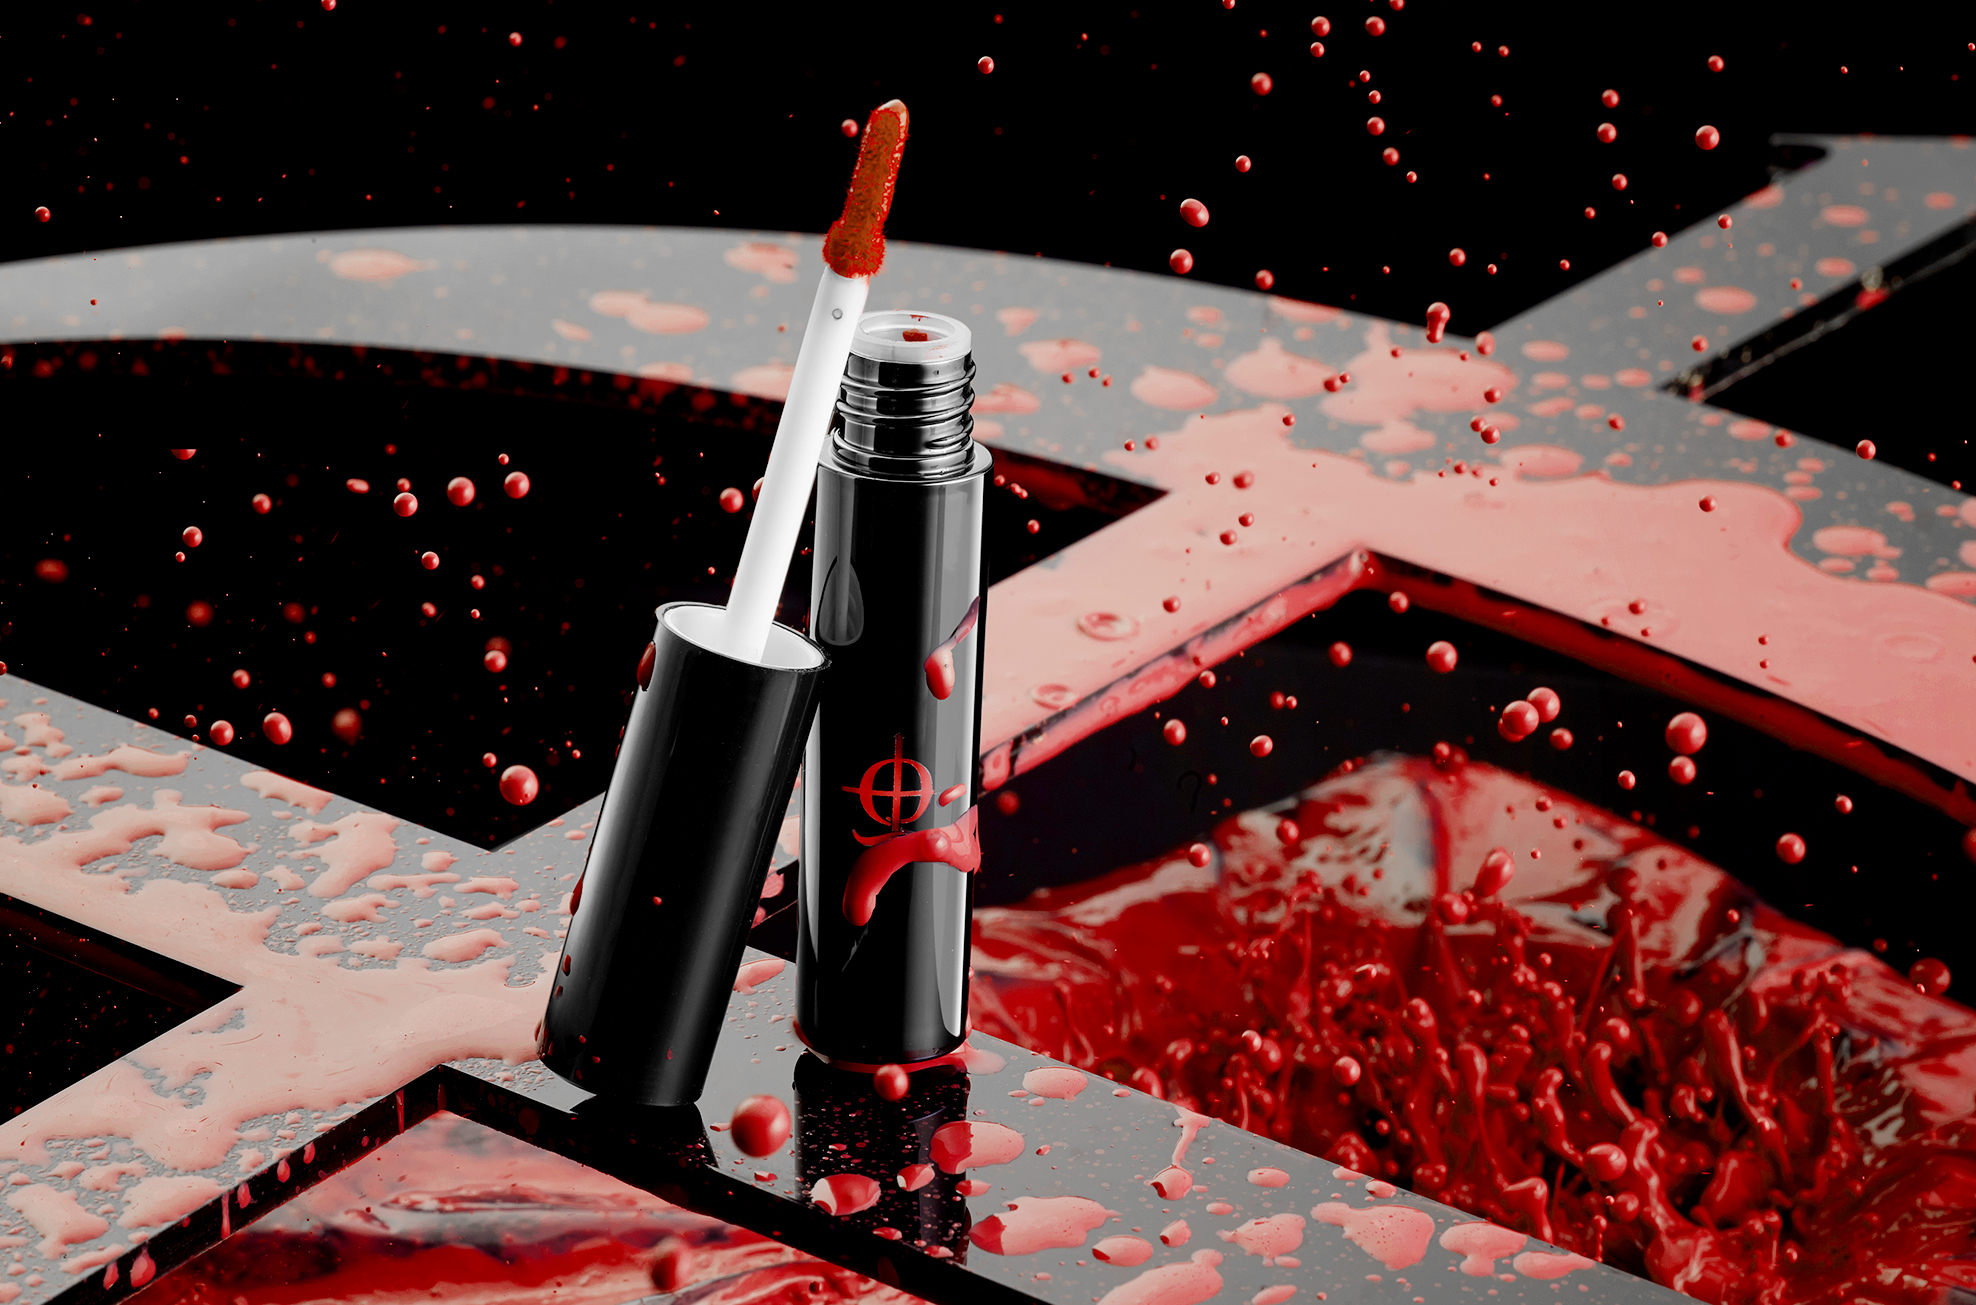 london product photographer  chris howlett A creative advertising product photography containing cosmetic products surrounded by explosion of red paint